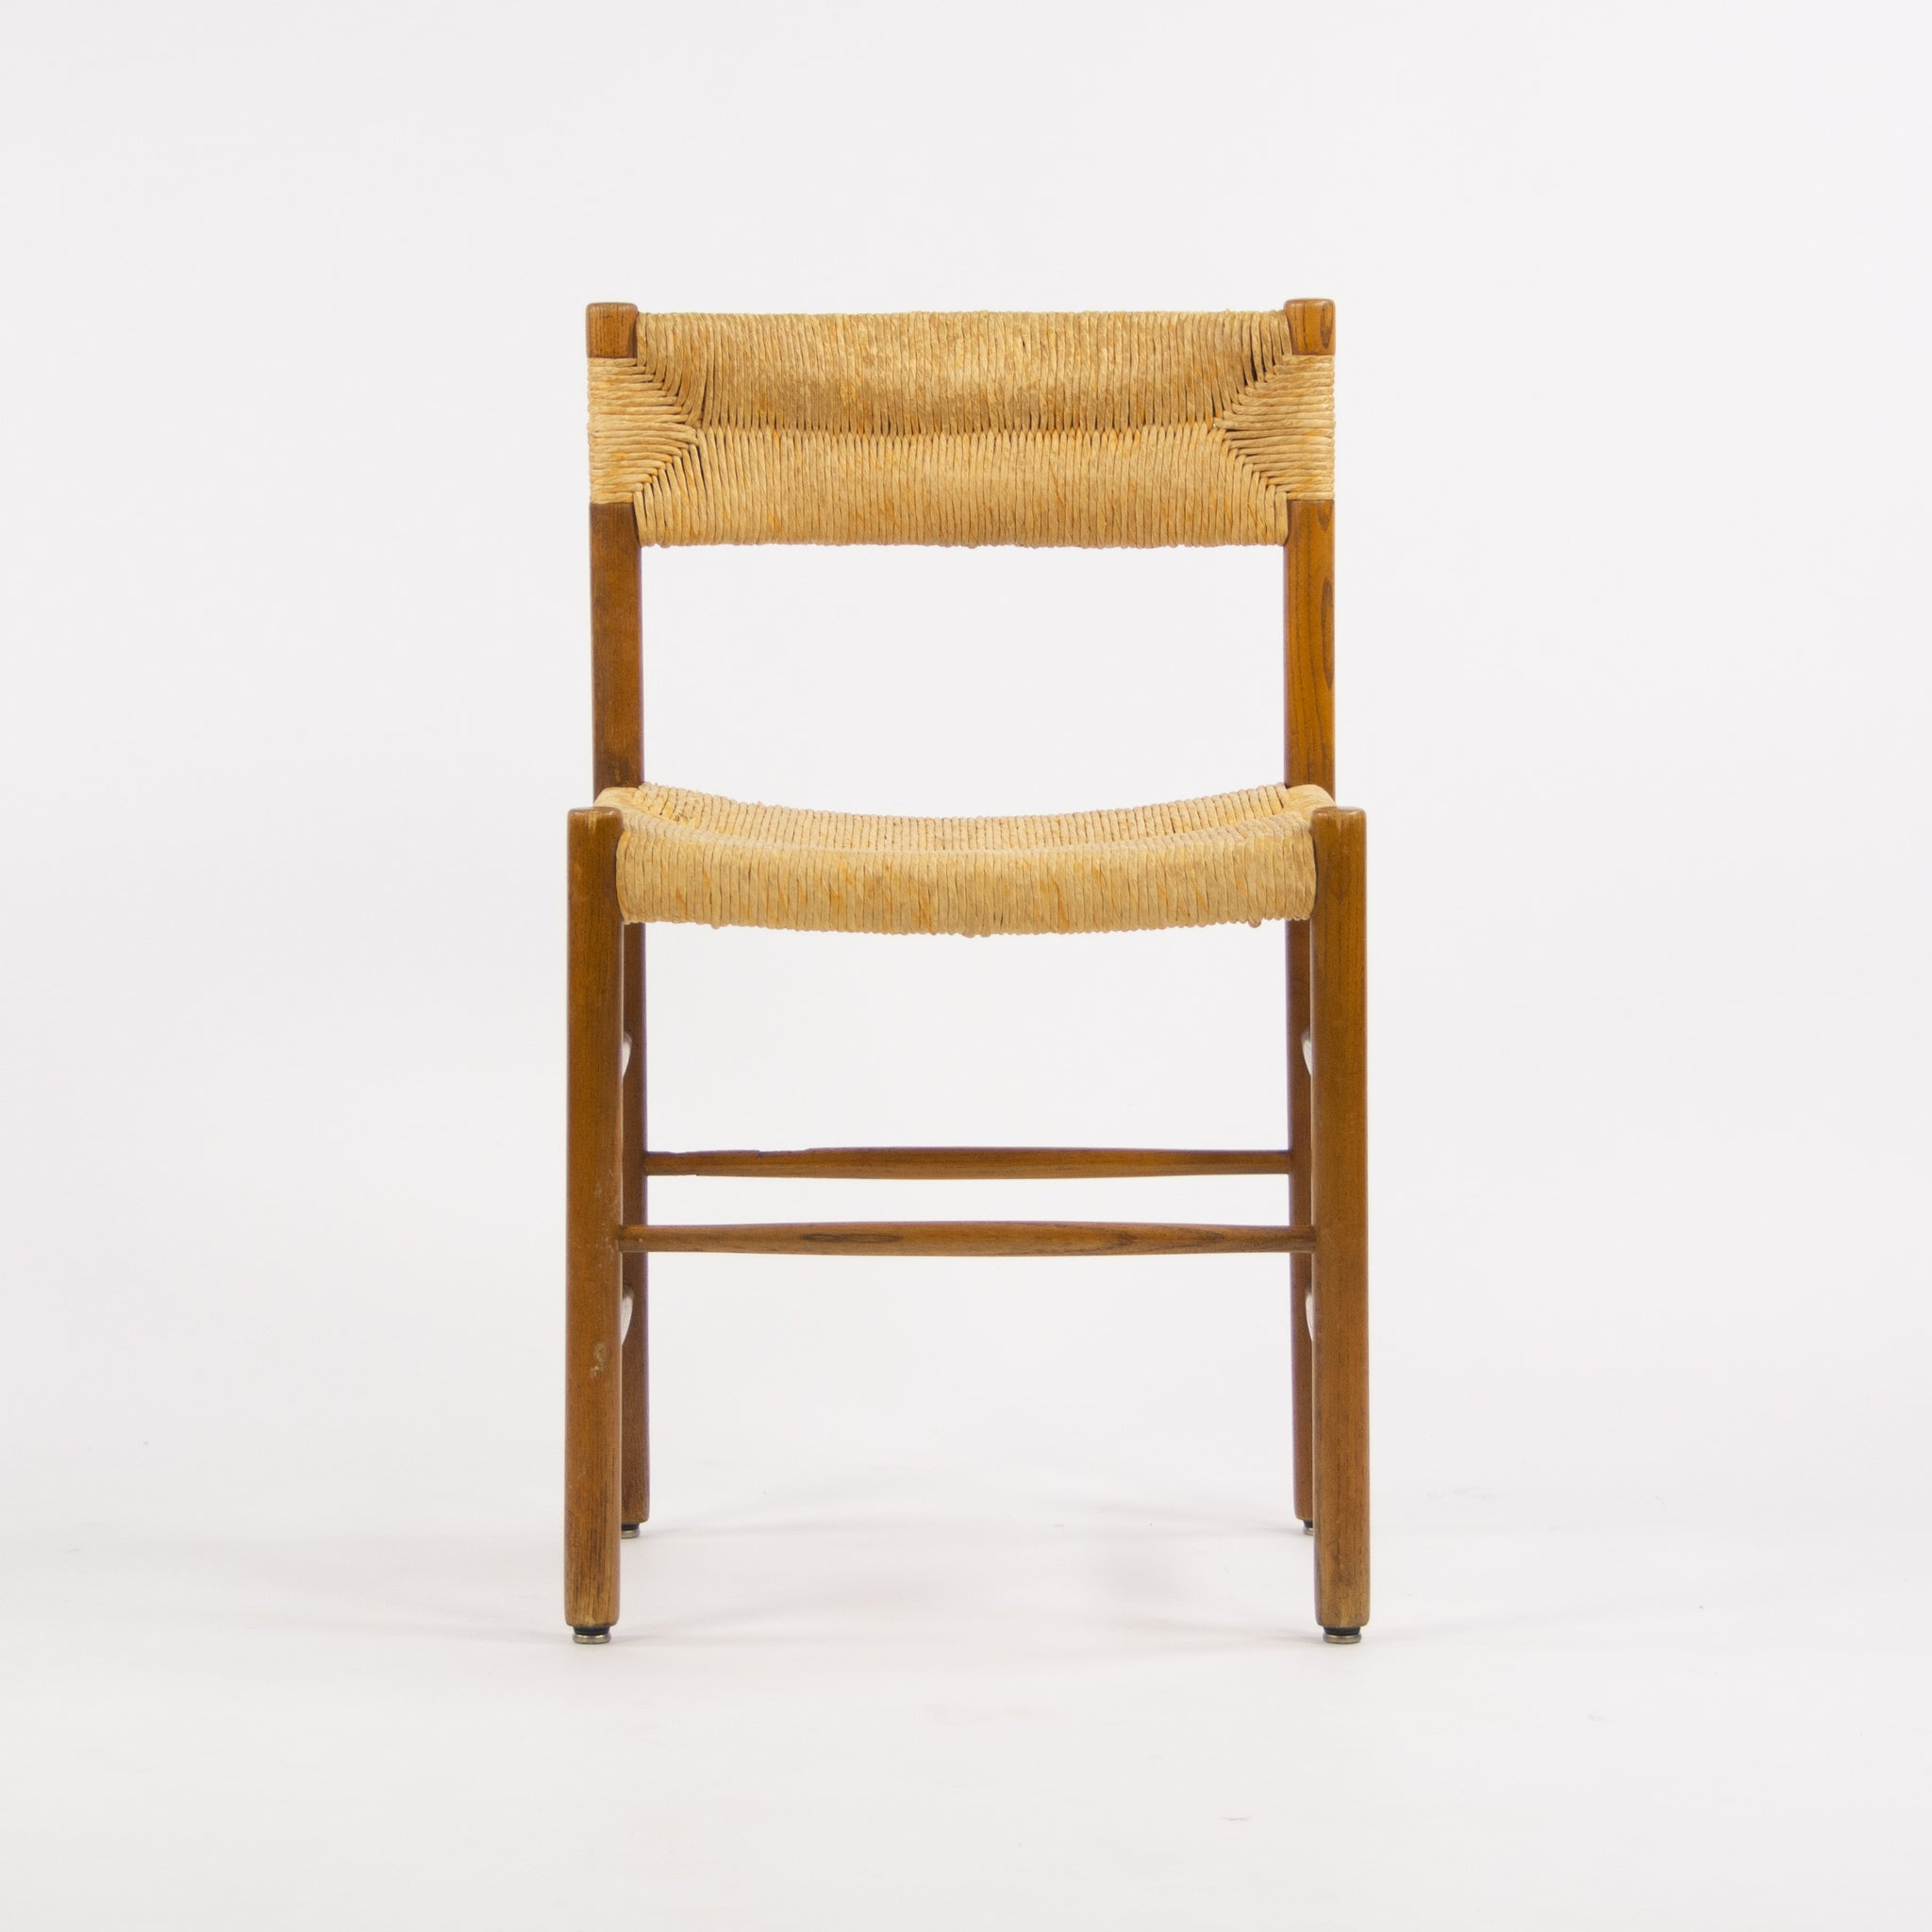 1950 Set of Four Vintage Charlotte Perriand Dordogne Chairs for Robert Sentou